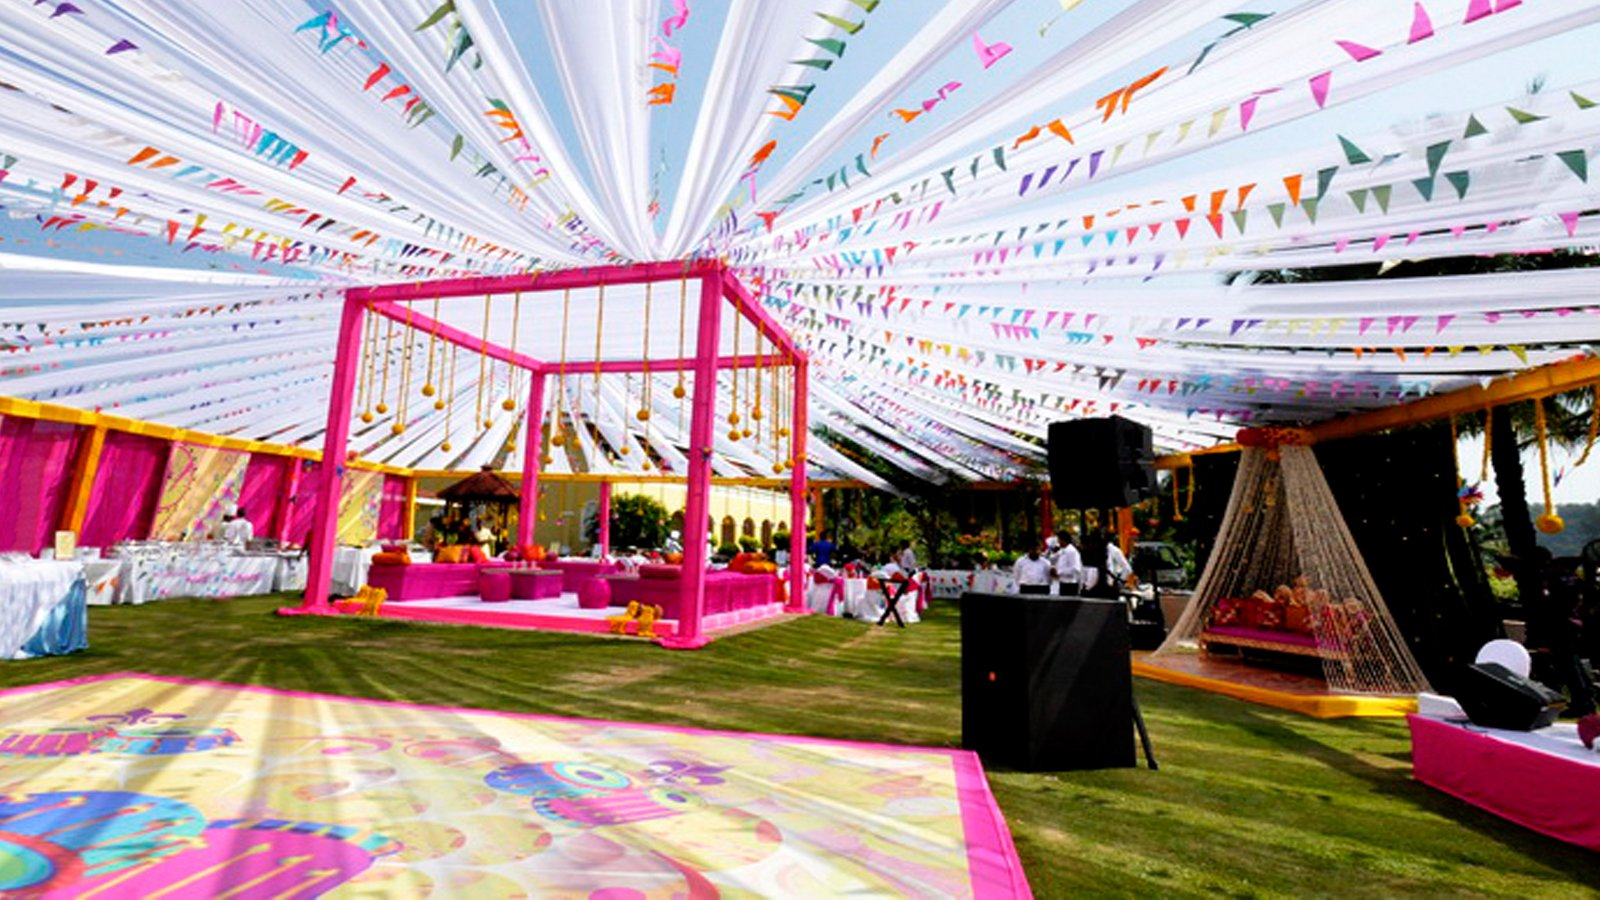 Destination Wedding Decor | Wedding Decorations ideas